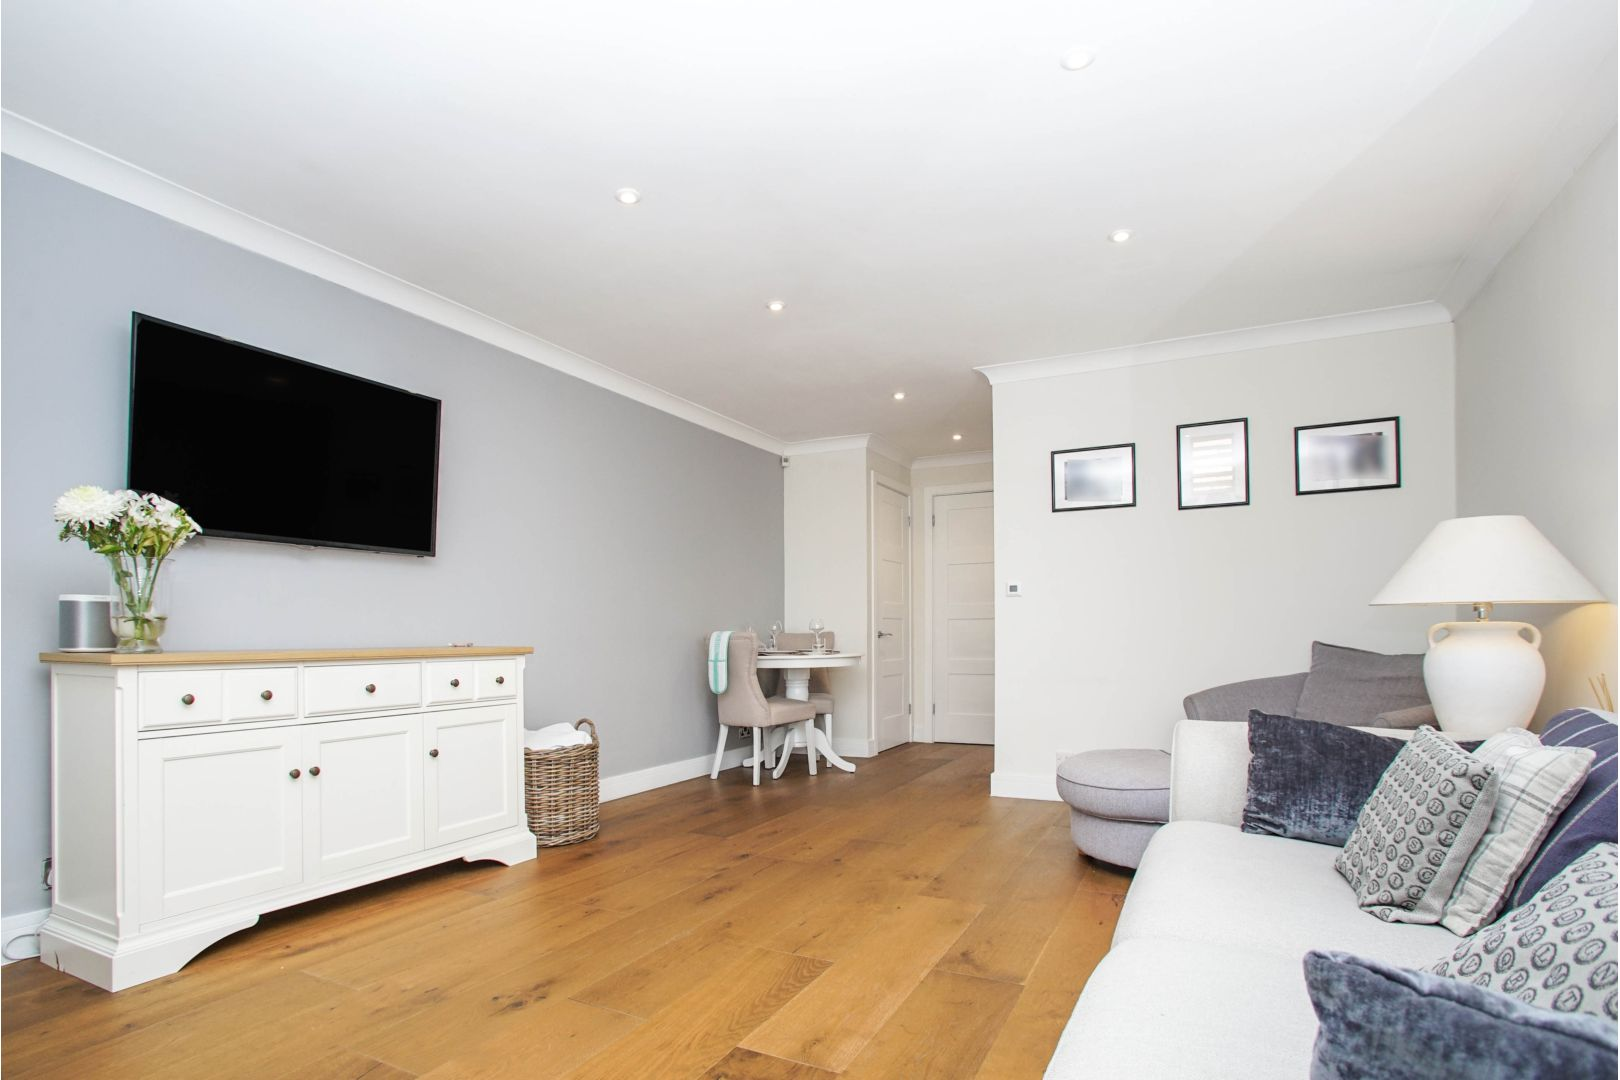 1 bed flat for sale in Kingswood Terrace, Chiswick W4 - Zoopla